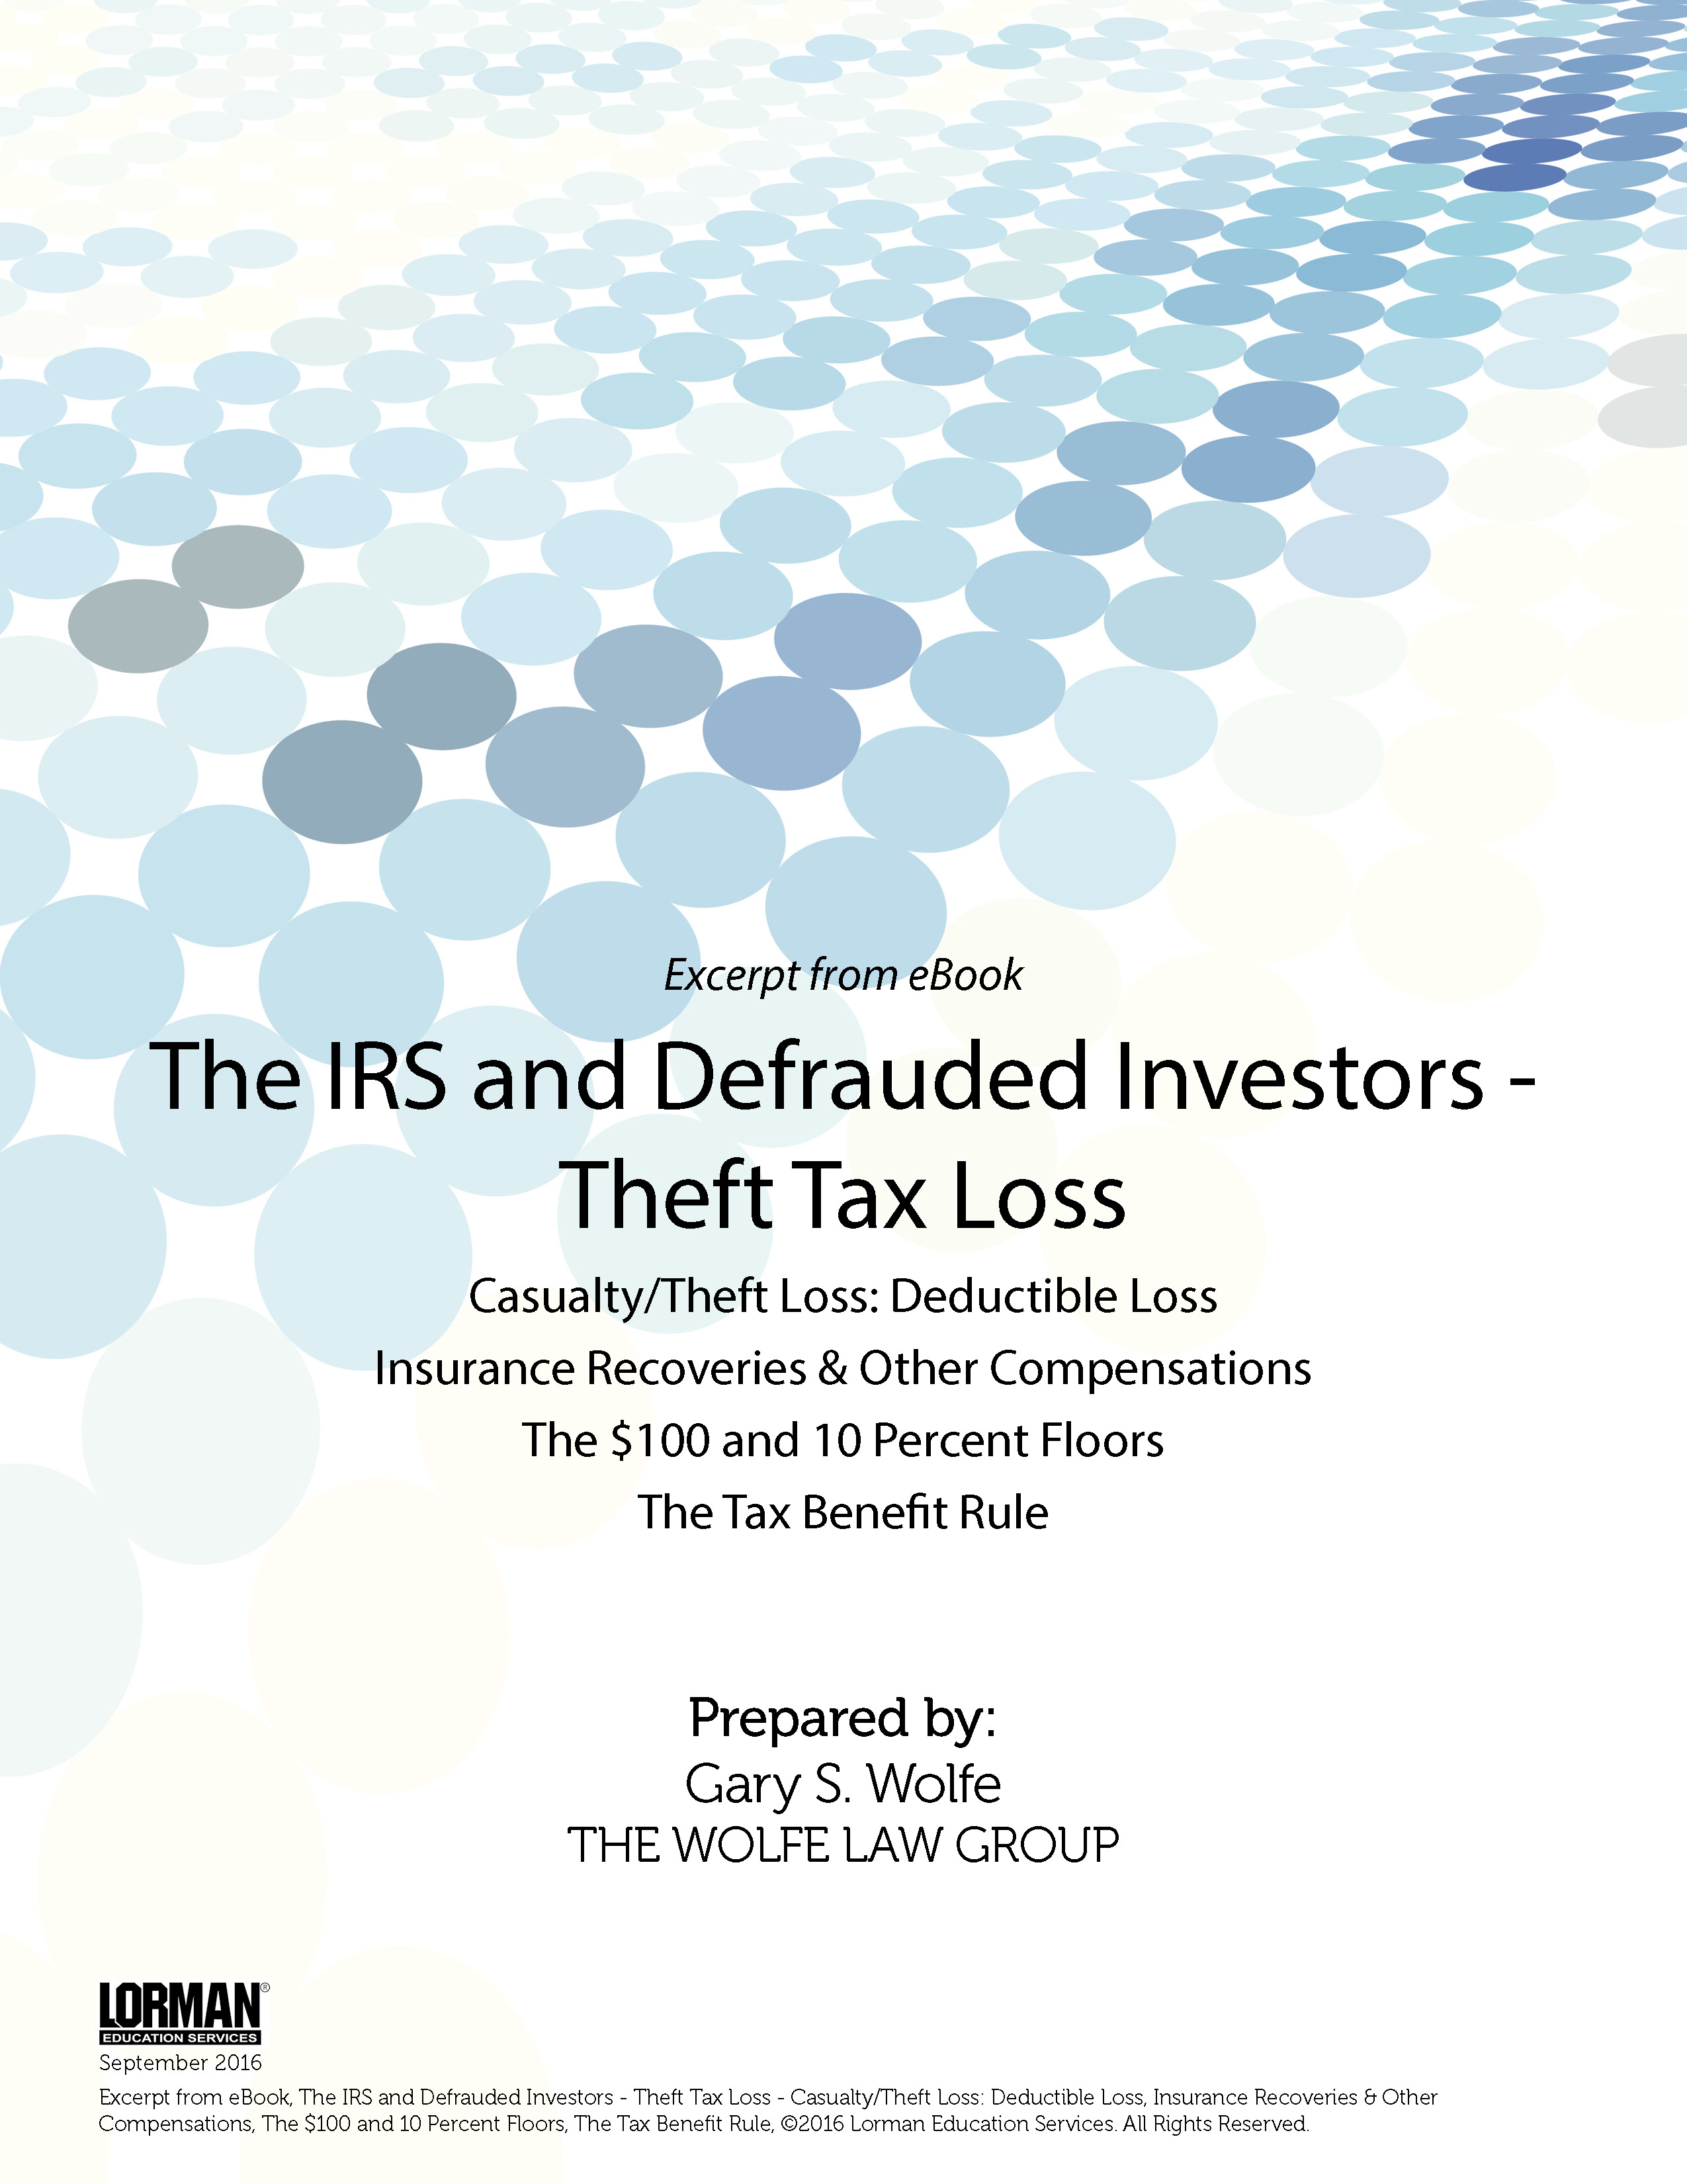 The IRS and Defrauded Investors: Theft Tax Loss - Casualty/Theft Loss: Deductible Loss, Insurance Recoveries & Other Compensations, The $100 and 10 Percent Floors, The Tax Benefit Rule